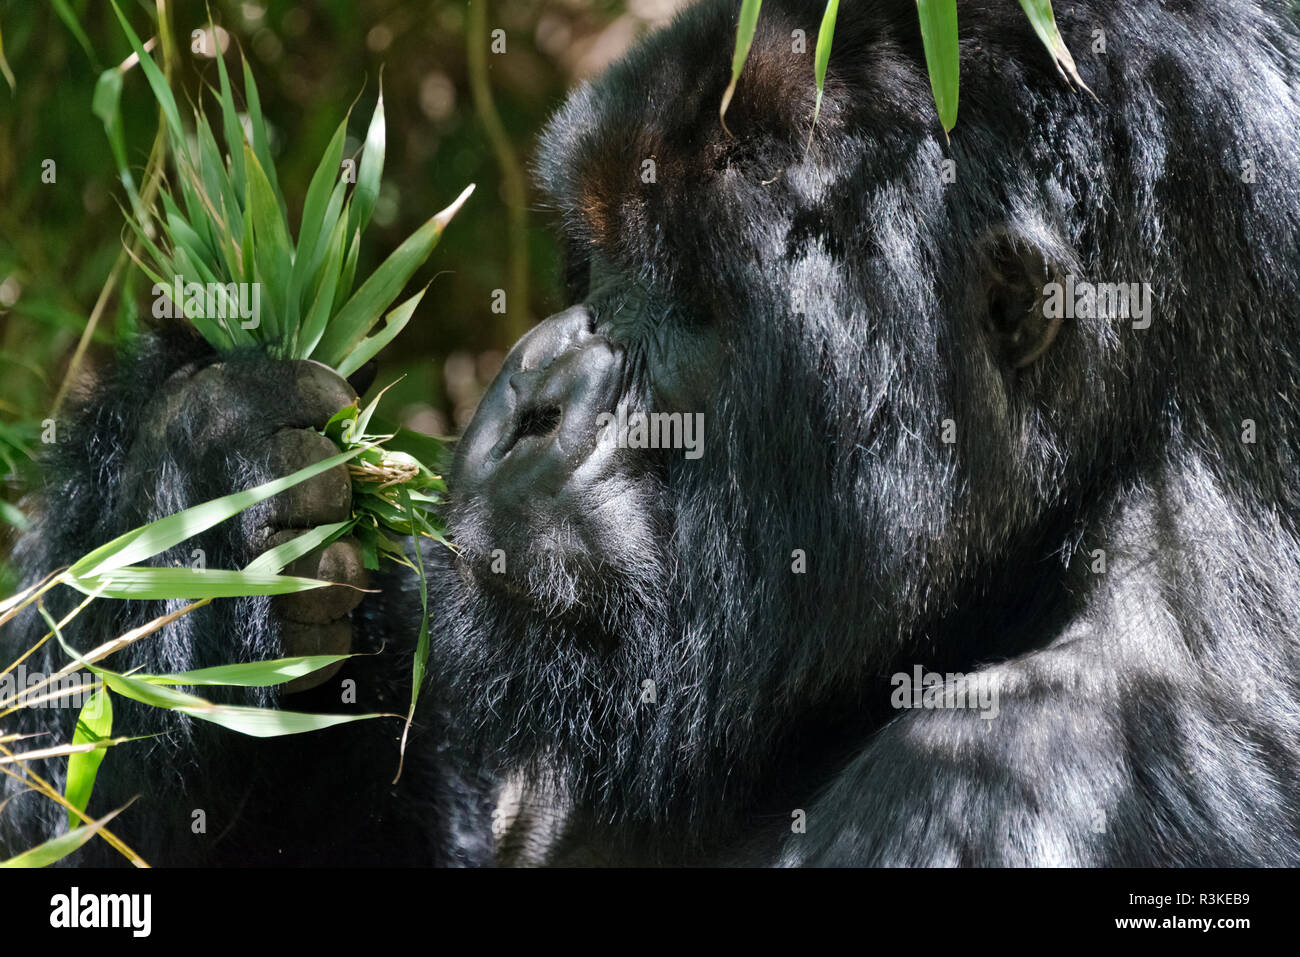 Silverback gorilla in the forest, Parc National des Volcans, Rwanda Stock Photo